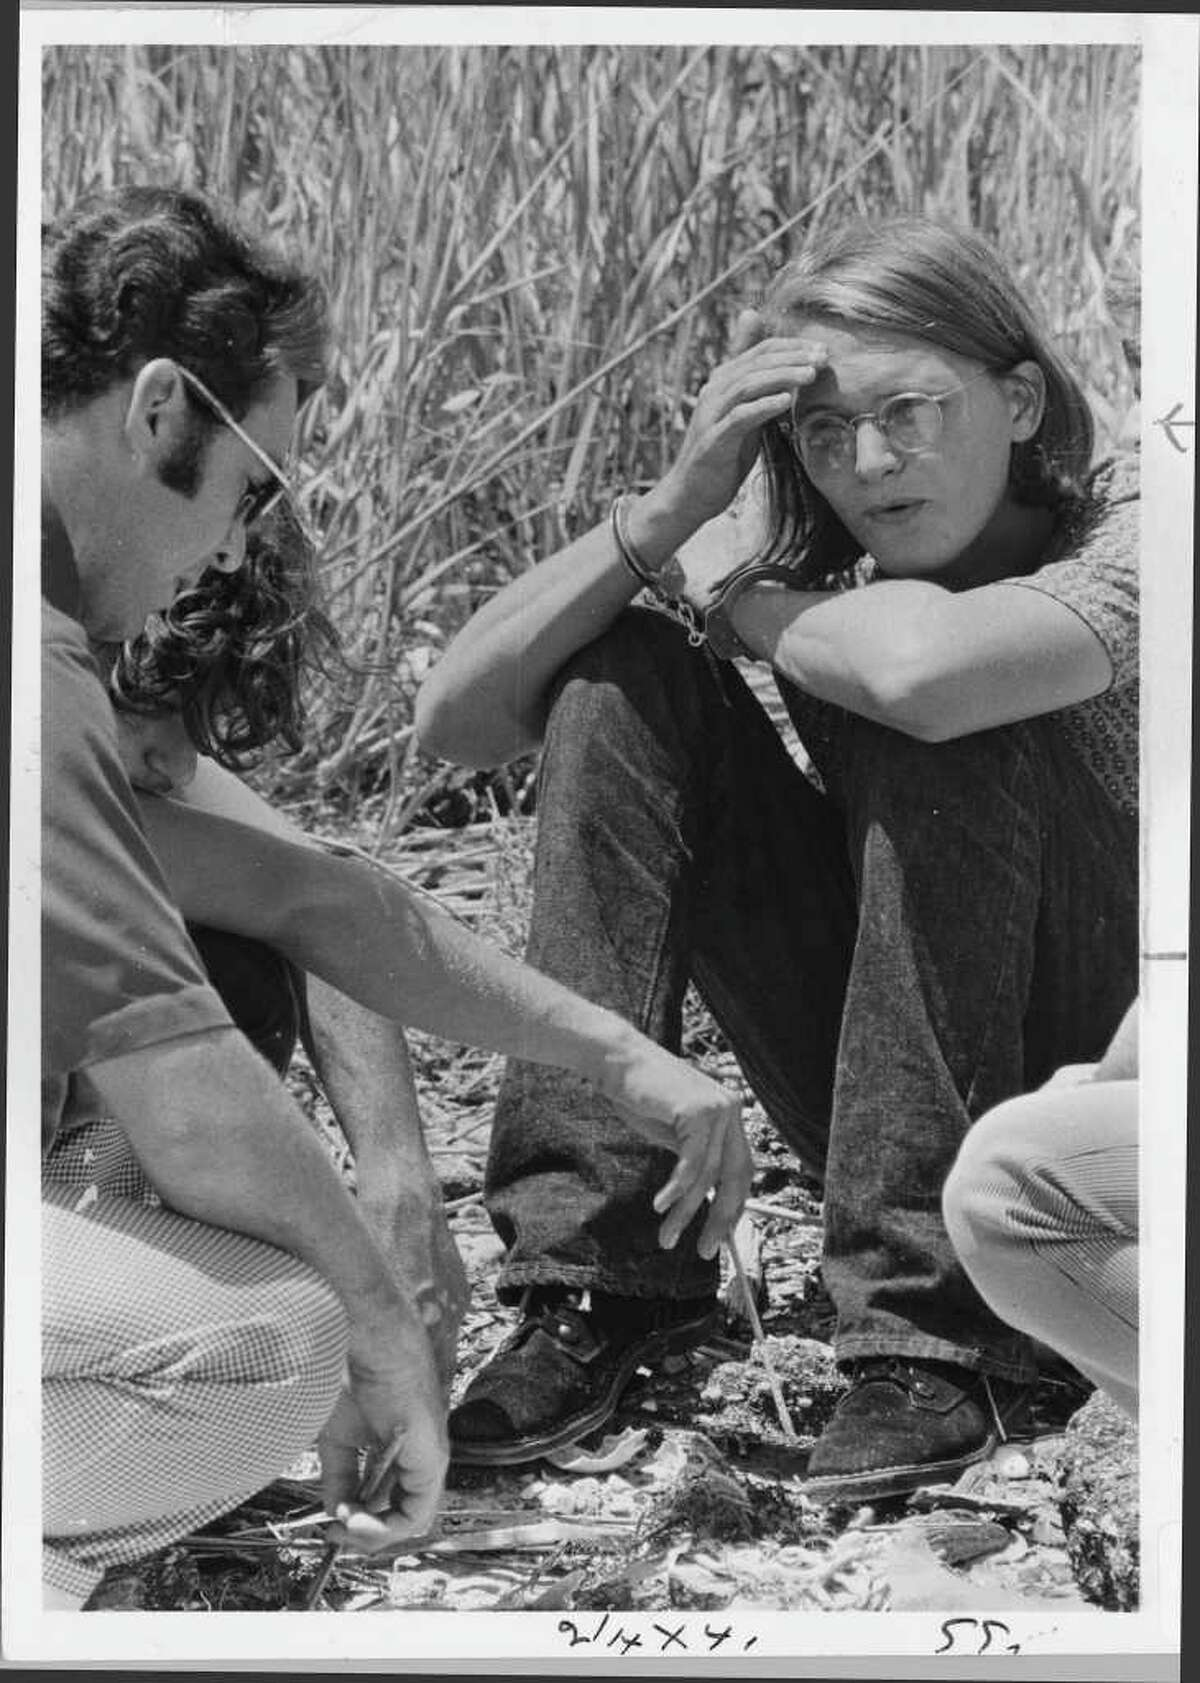 David Owen Brooks, another one of Dean Corll's accomplices, is shown at a crime scene around 1973.